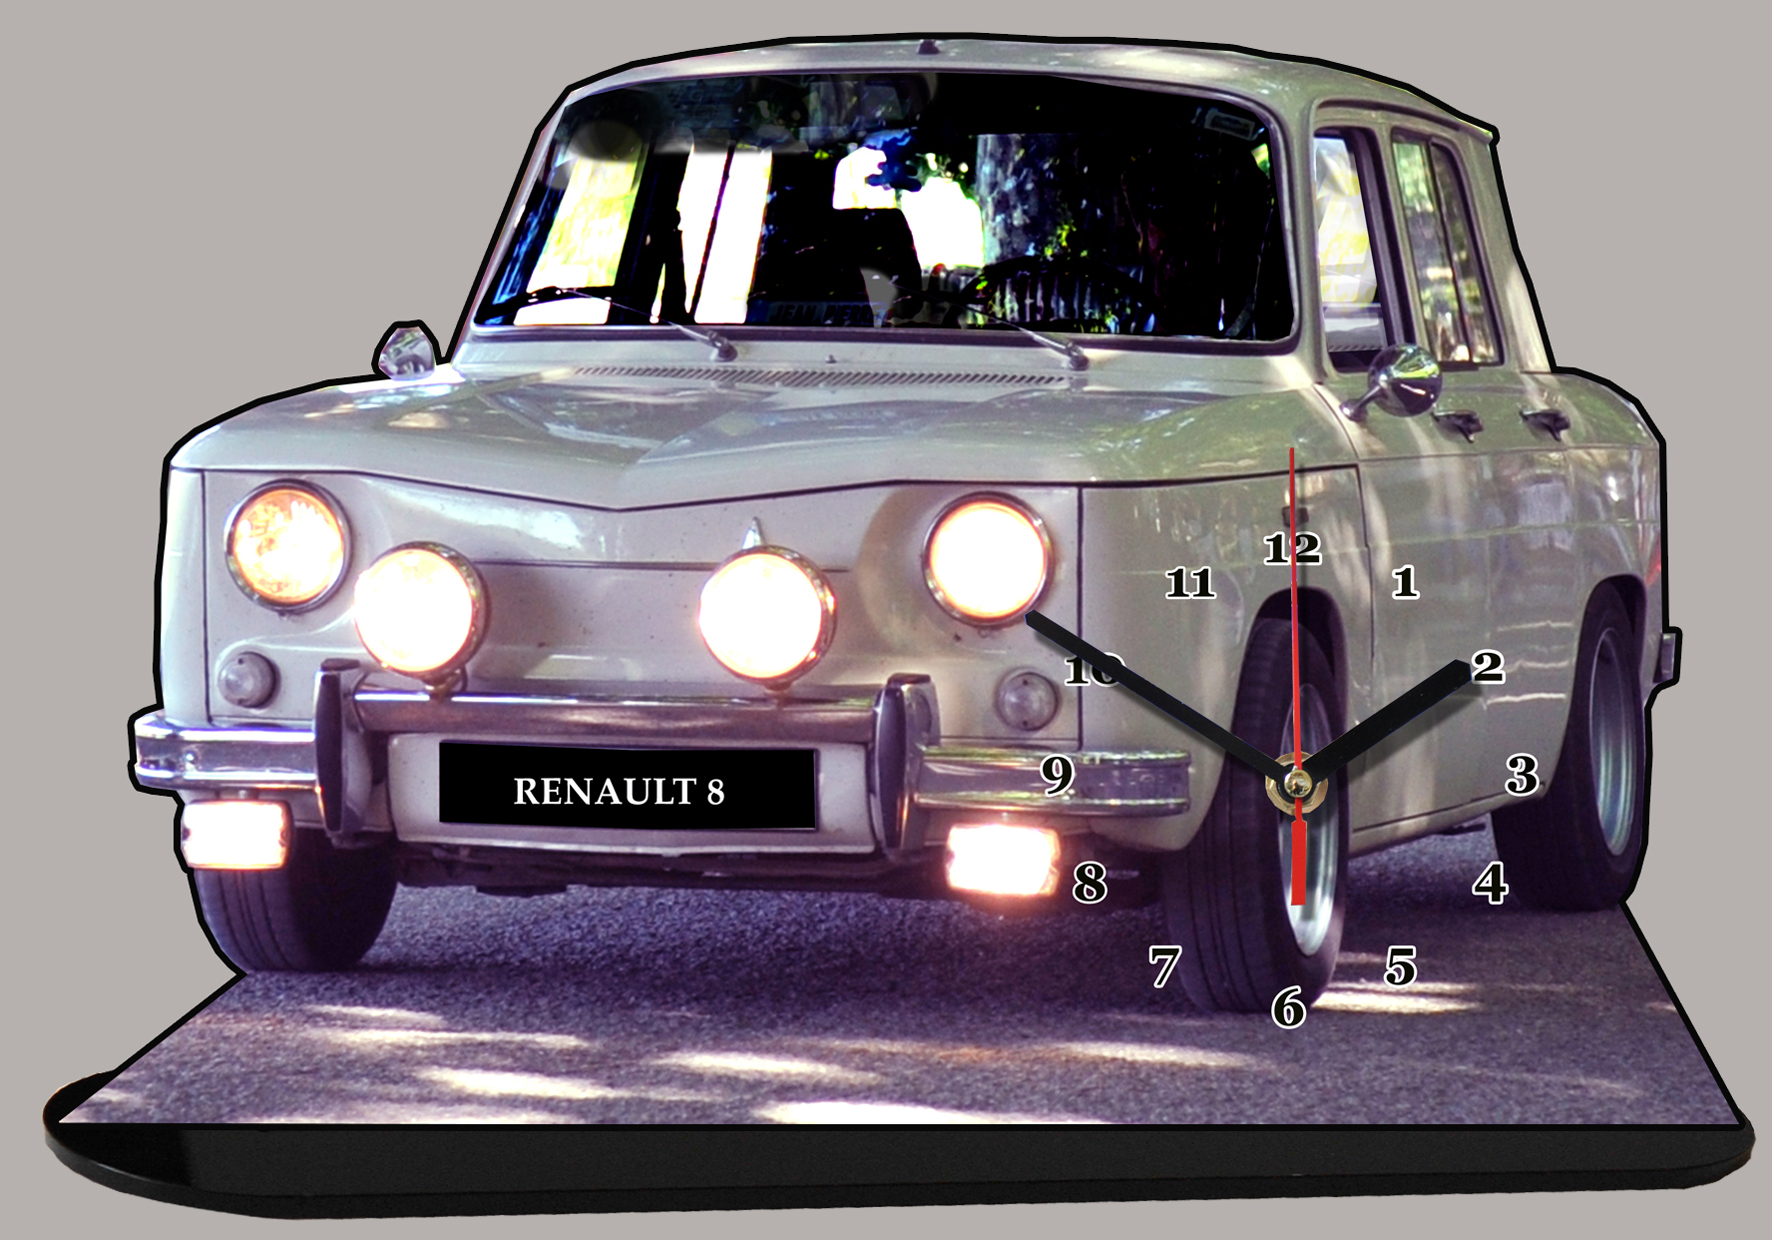 Renault 8 S Pictures to pin on Pinterest